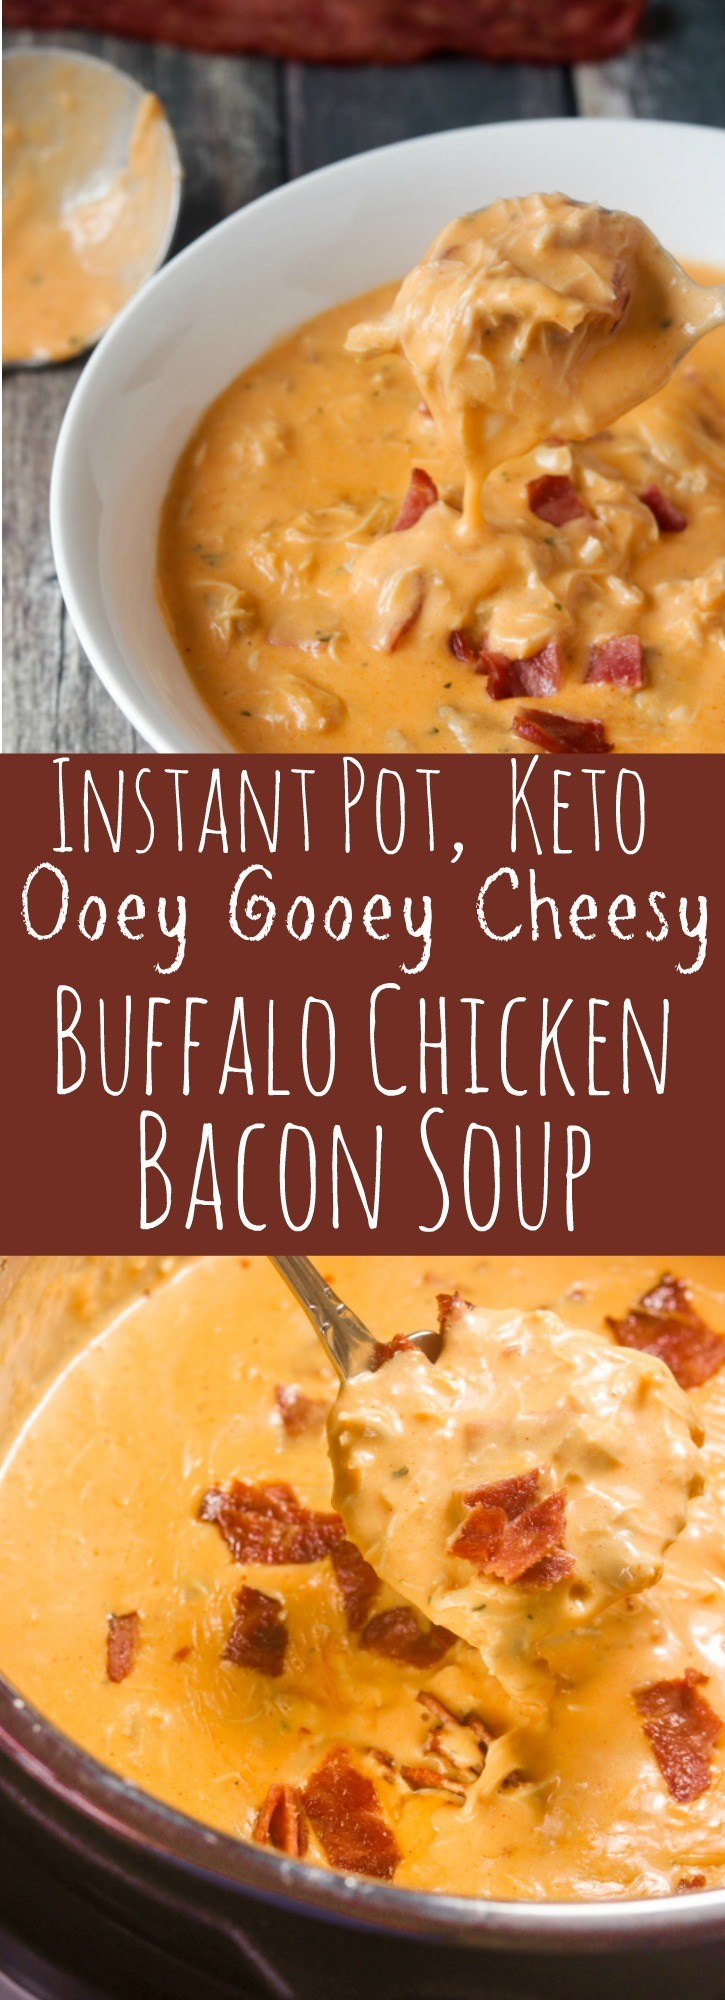 Instant Pot Keto Buffalo Chicken Bacon Soup, Low Carb • Farmstead Chic